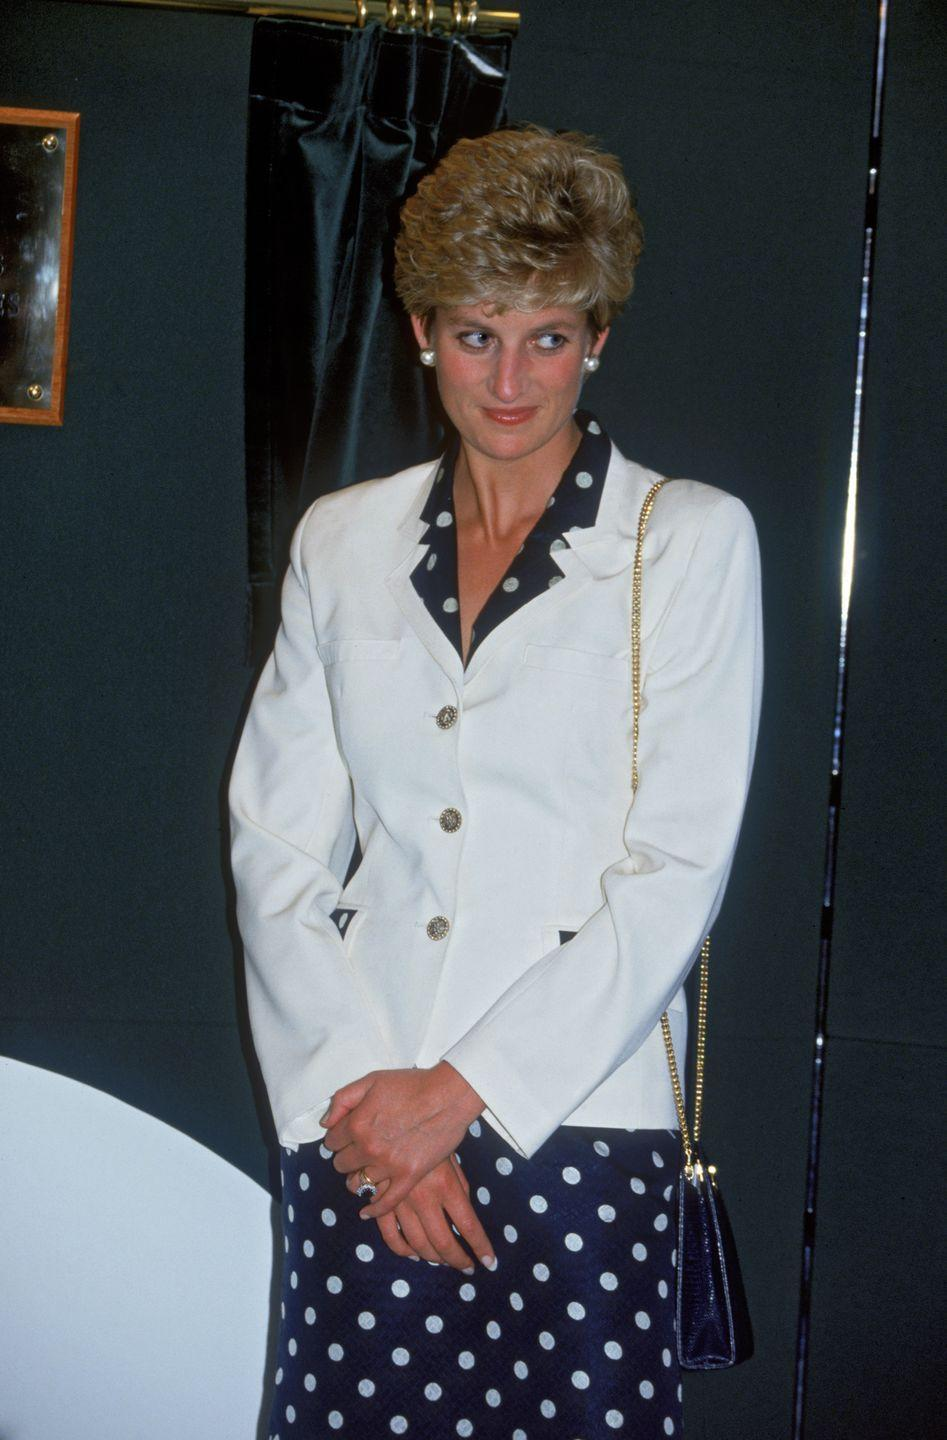 <p>While in Cardiff in June 1993, Diana opted for a foolproof outfit combination: a patterned navy and white dress paired with a white blazer.<br></p>